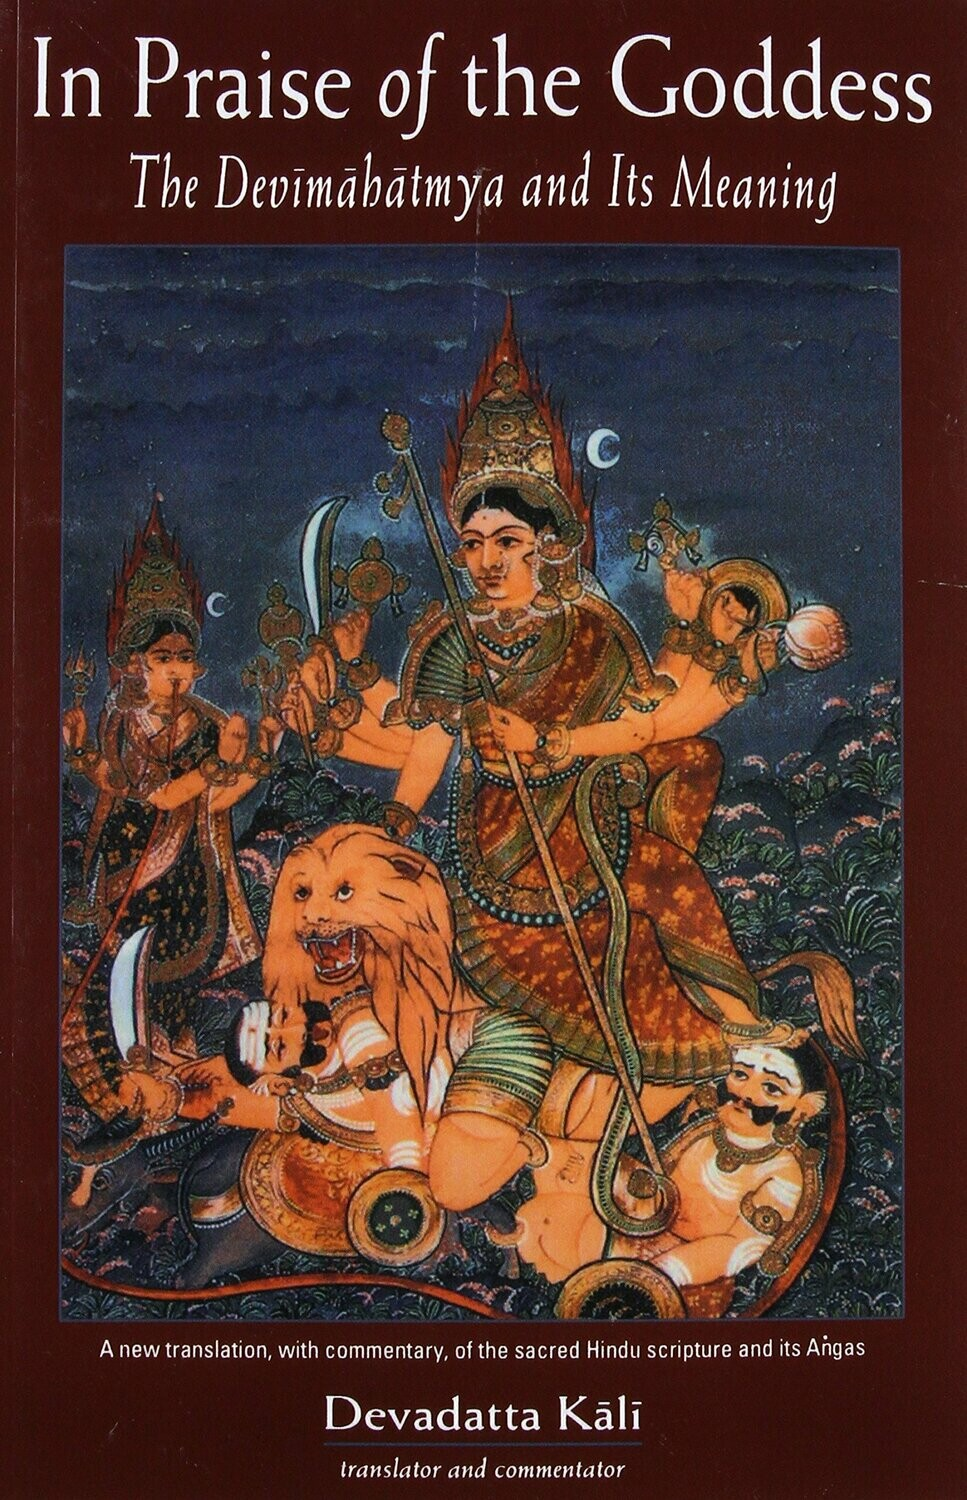 In Praise of the Goddess by Devadatta Kali